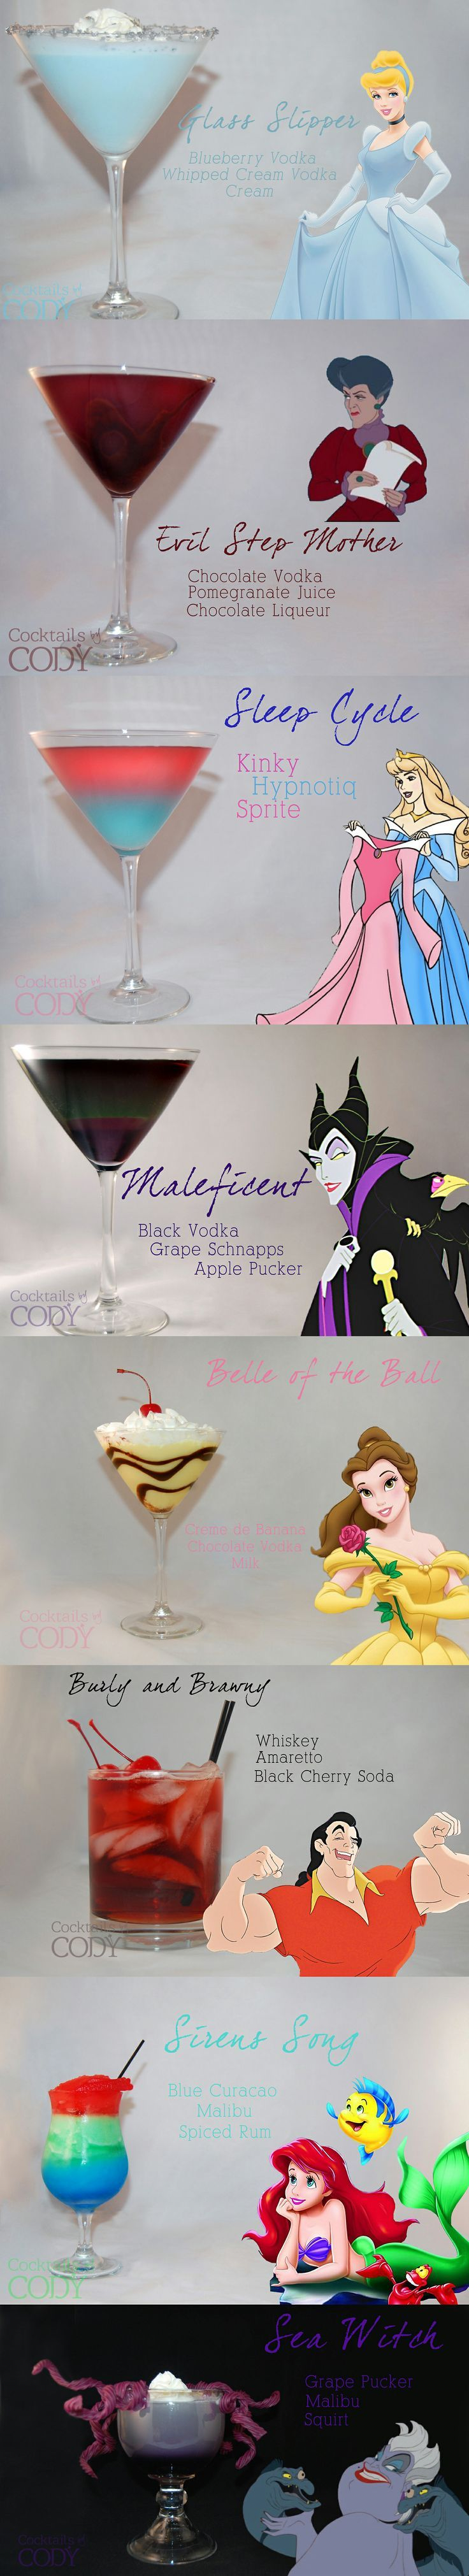 """Disney Themed Cocktails from Cocktails by Cody - <a href=""""https://www.facebook.comCodys.cocktails"""" rel=""""nofollow"""" target=""""_blank"""">www.facebook.com...</a>"""